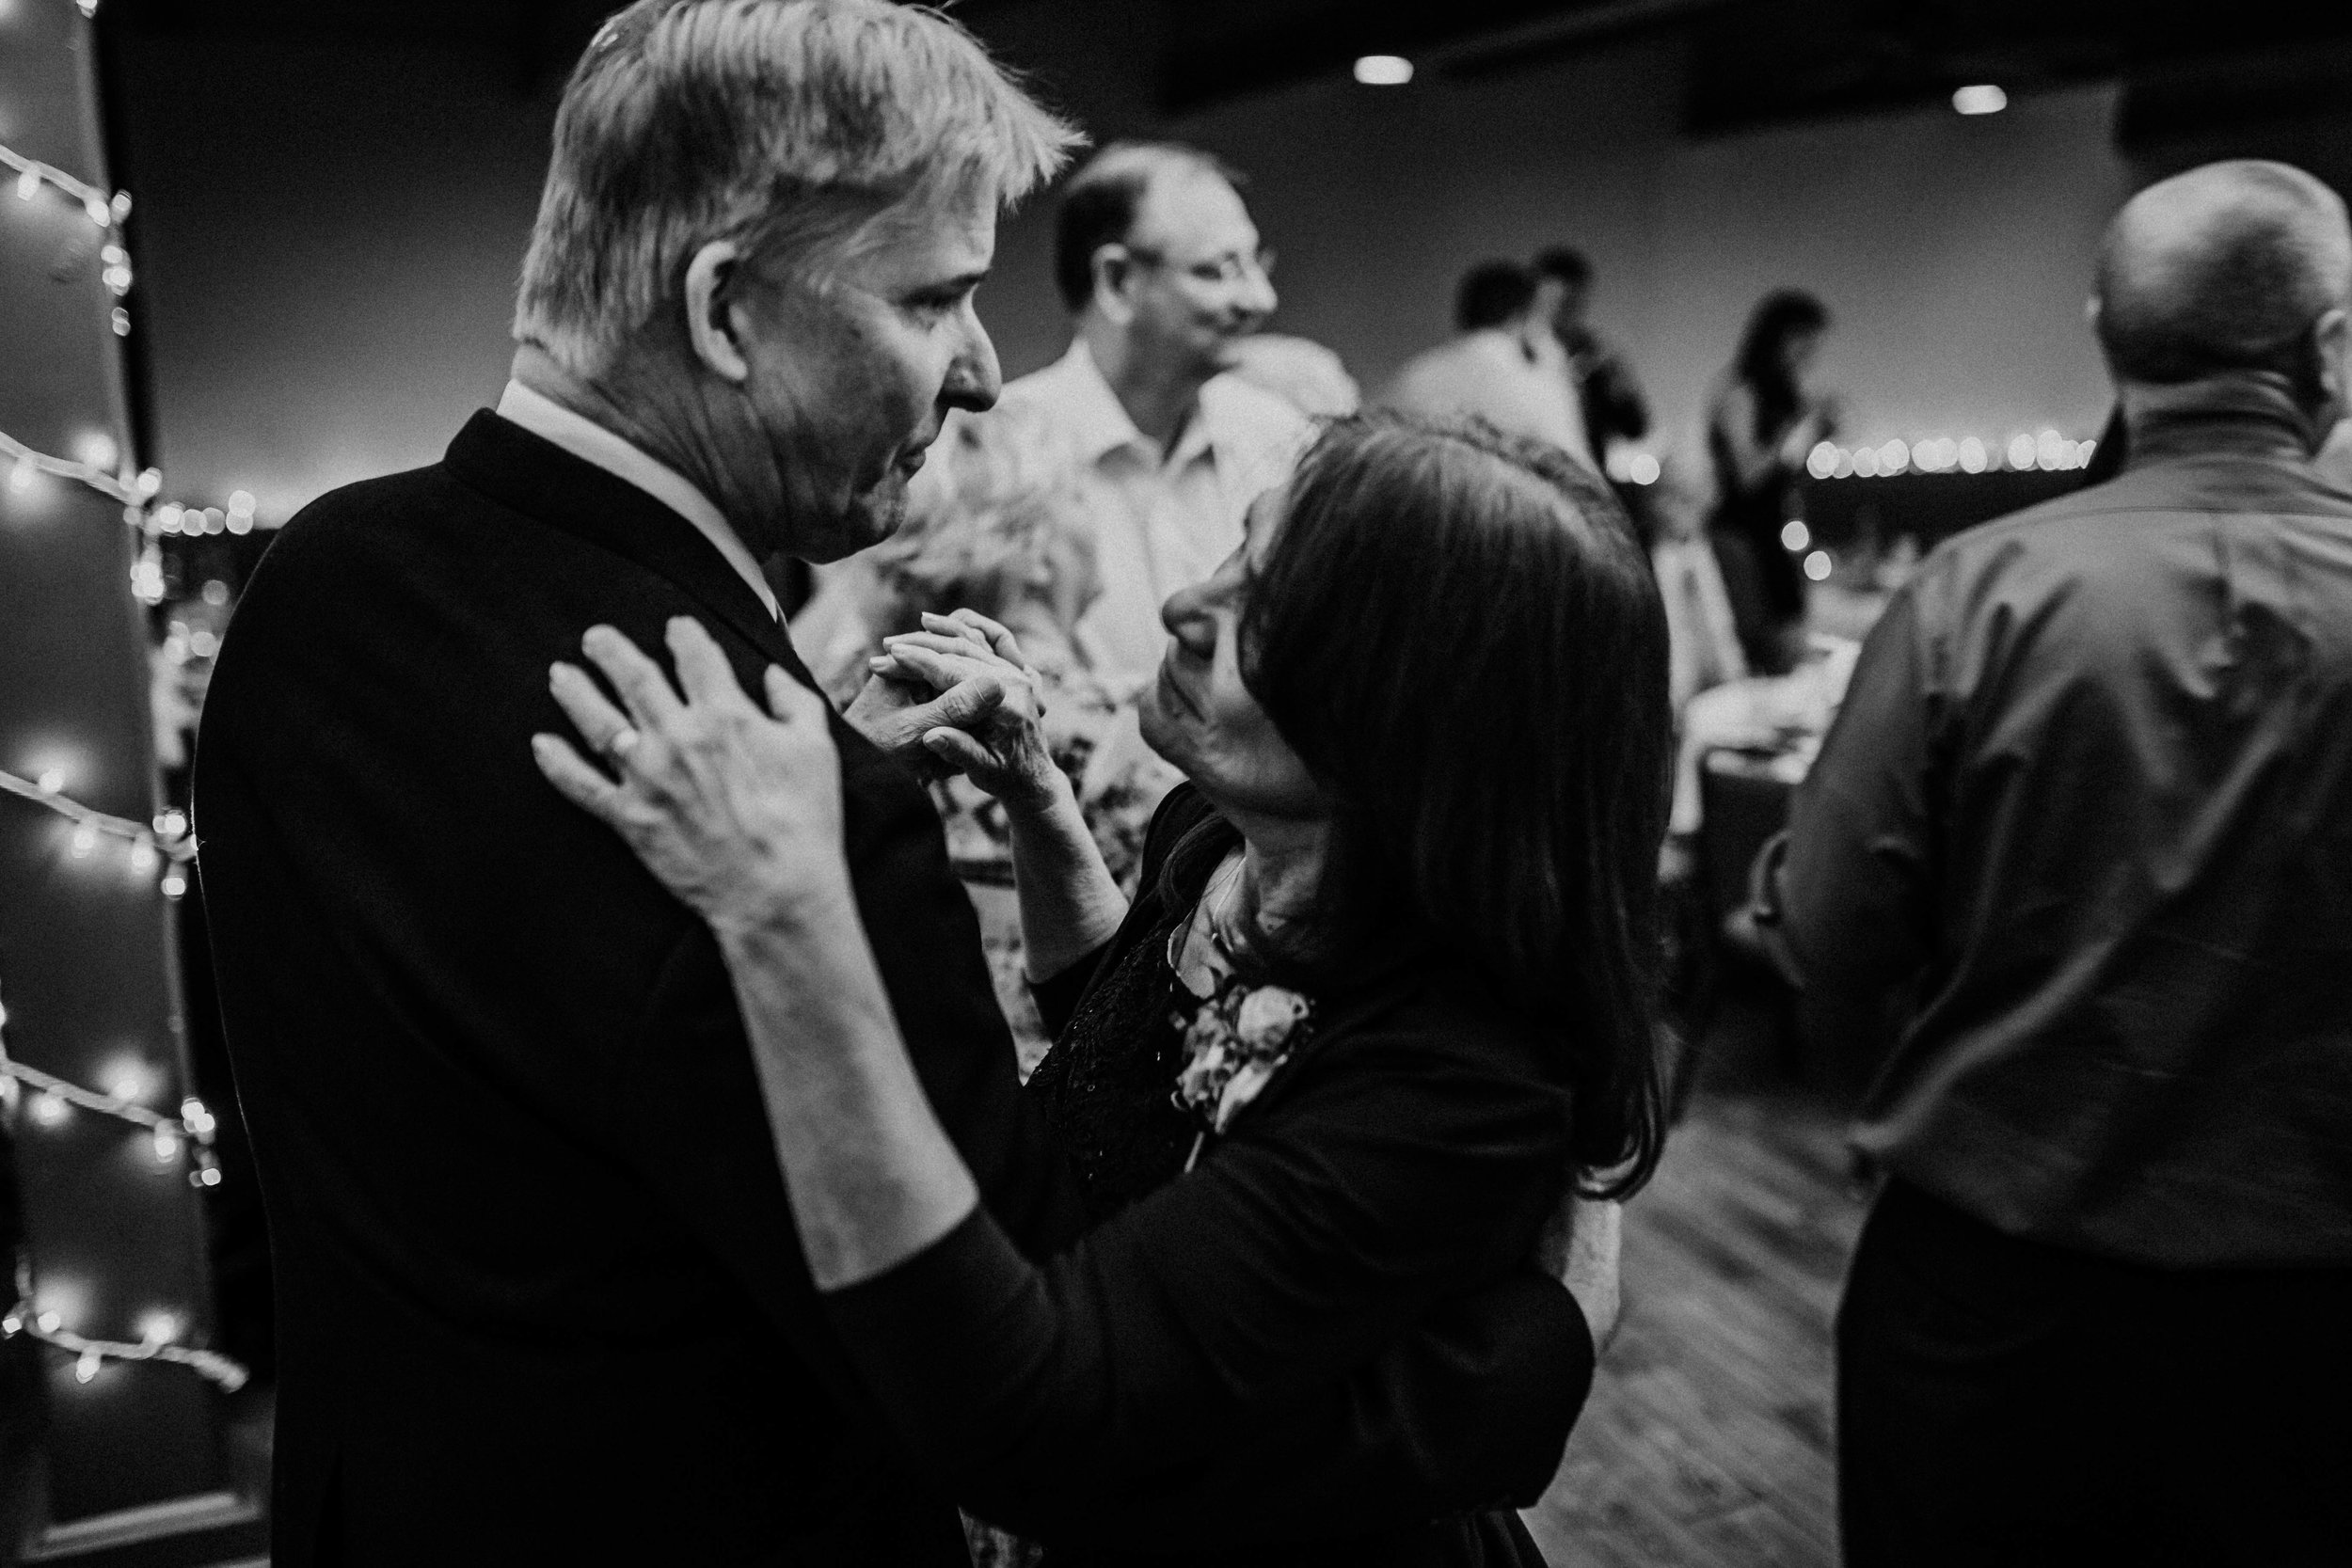 Bert & Lauren's North Kansas City Spring Wedding | Hannahill Photography | Raleigh Durham Photographer | North Carolina Wedding Photography | Family Photographer | Wedding photographer | bride's parents share a sweet dance at the reception